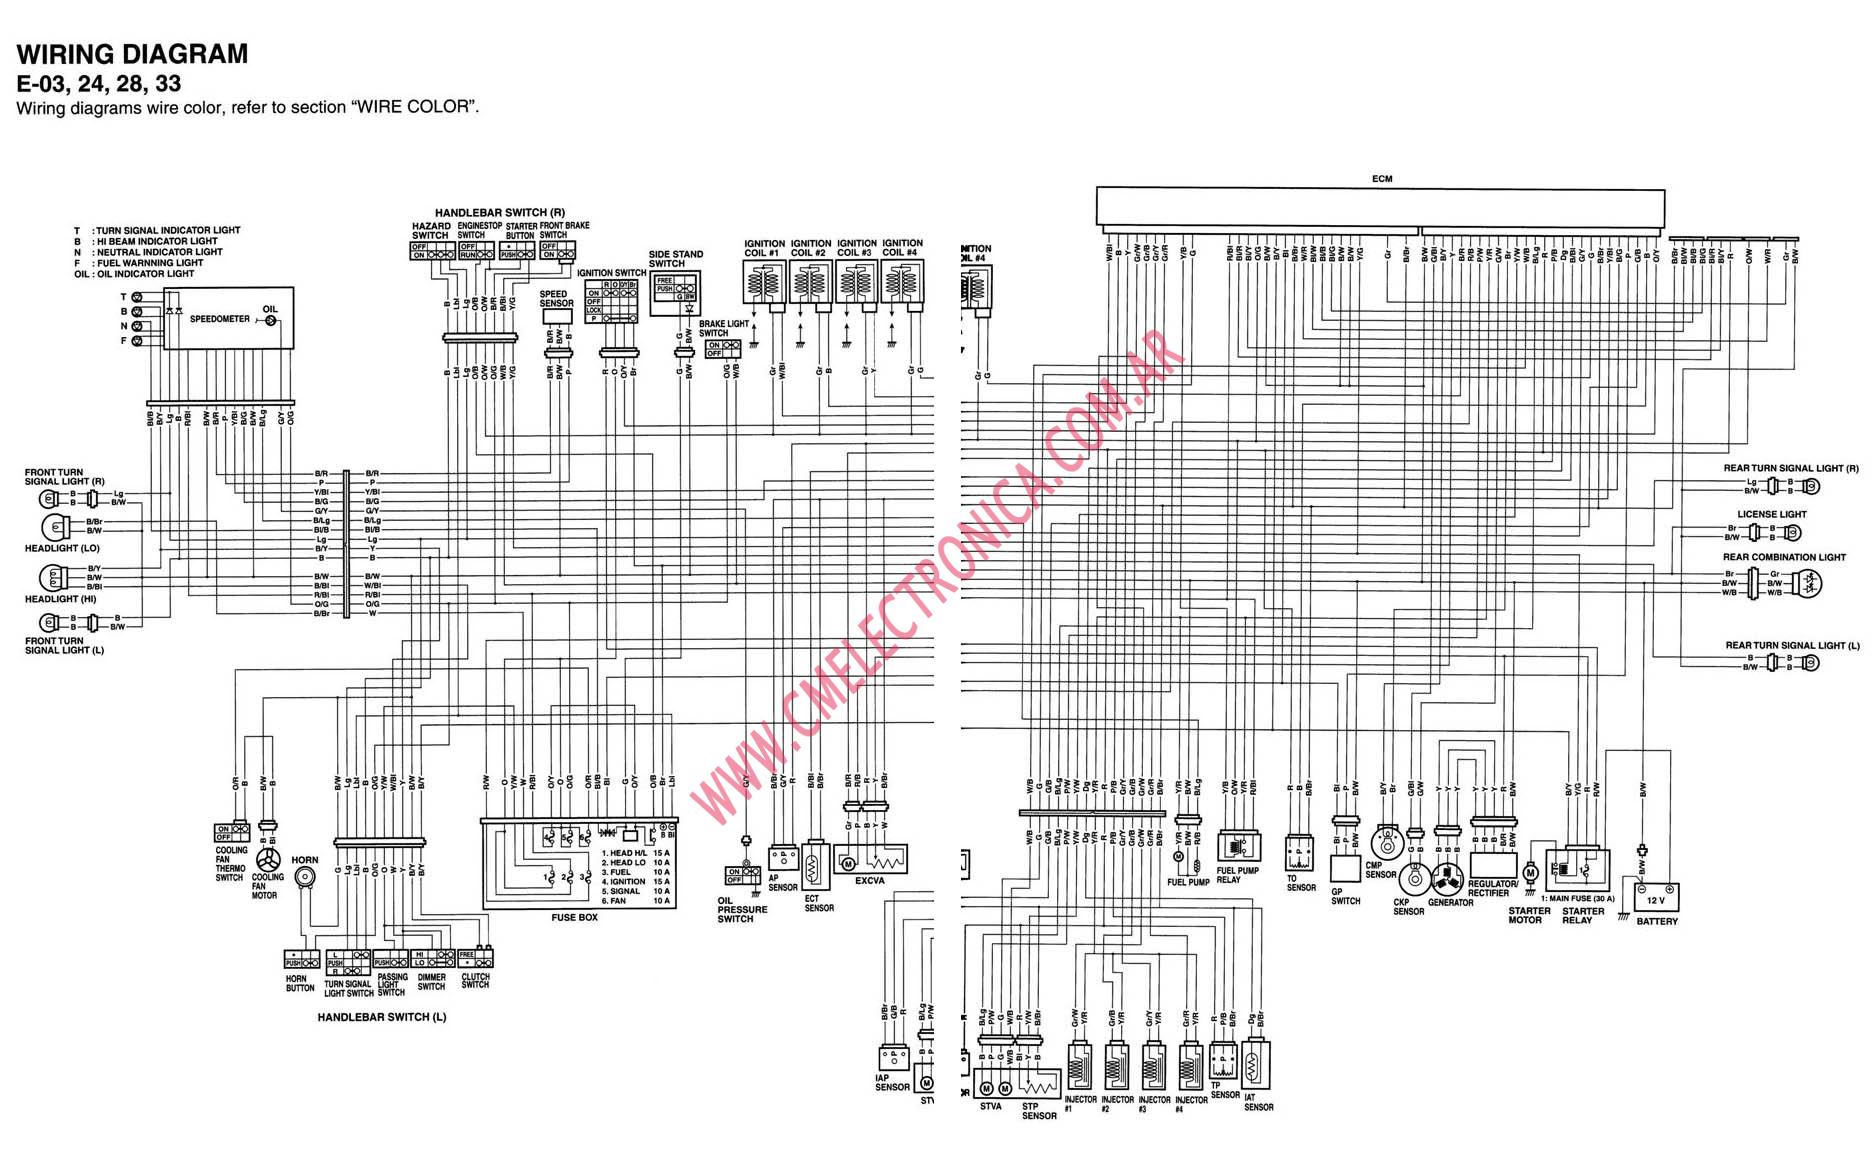 Vz800 Wiring Diagram 2006 1995 Yamaha Golf Cart Data Todayvz800 Ford Diagrams